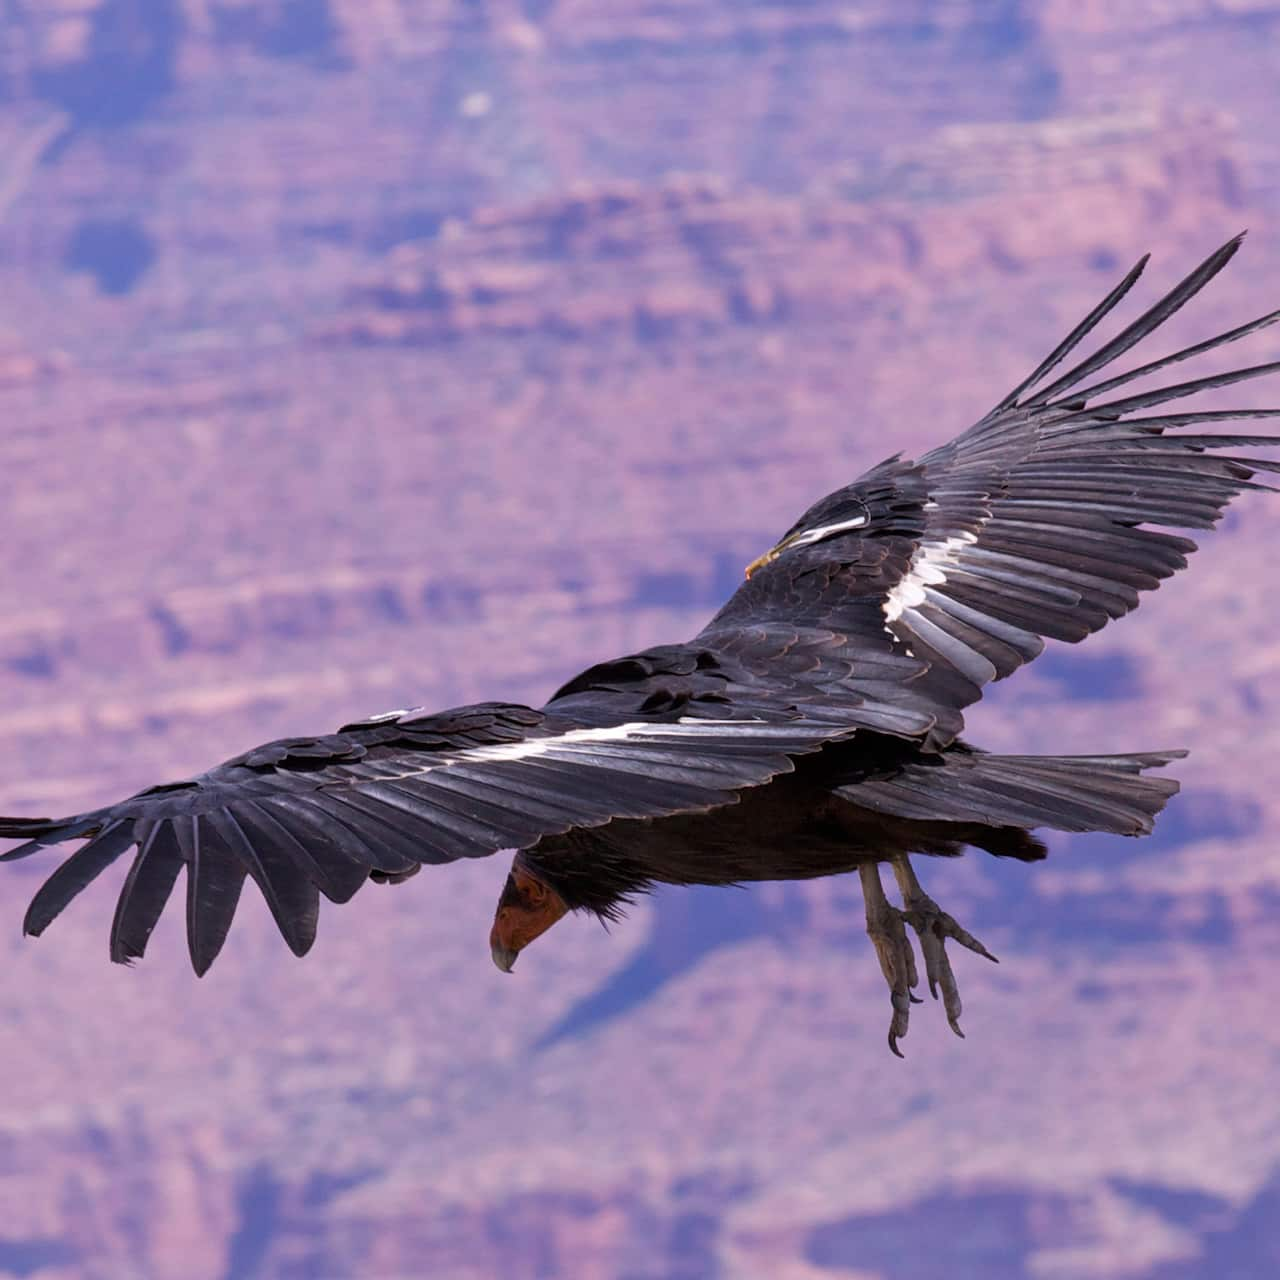 An eagle flies over a rocky surface